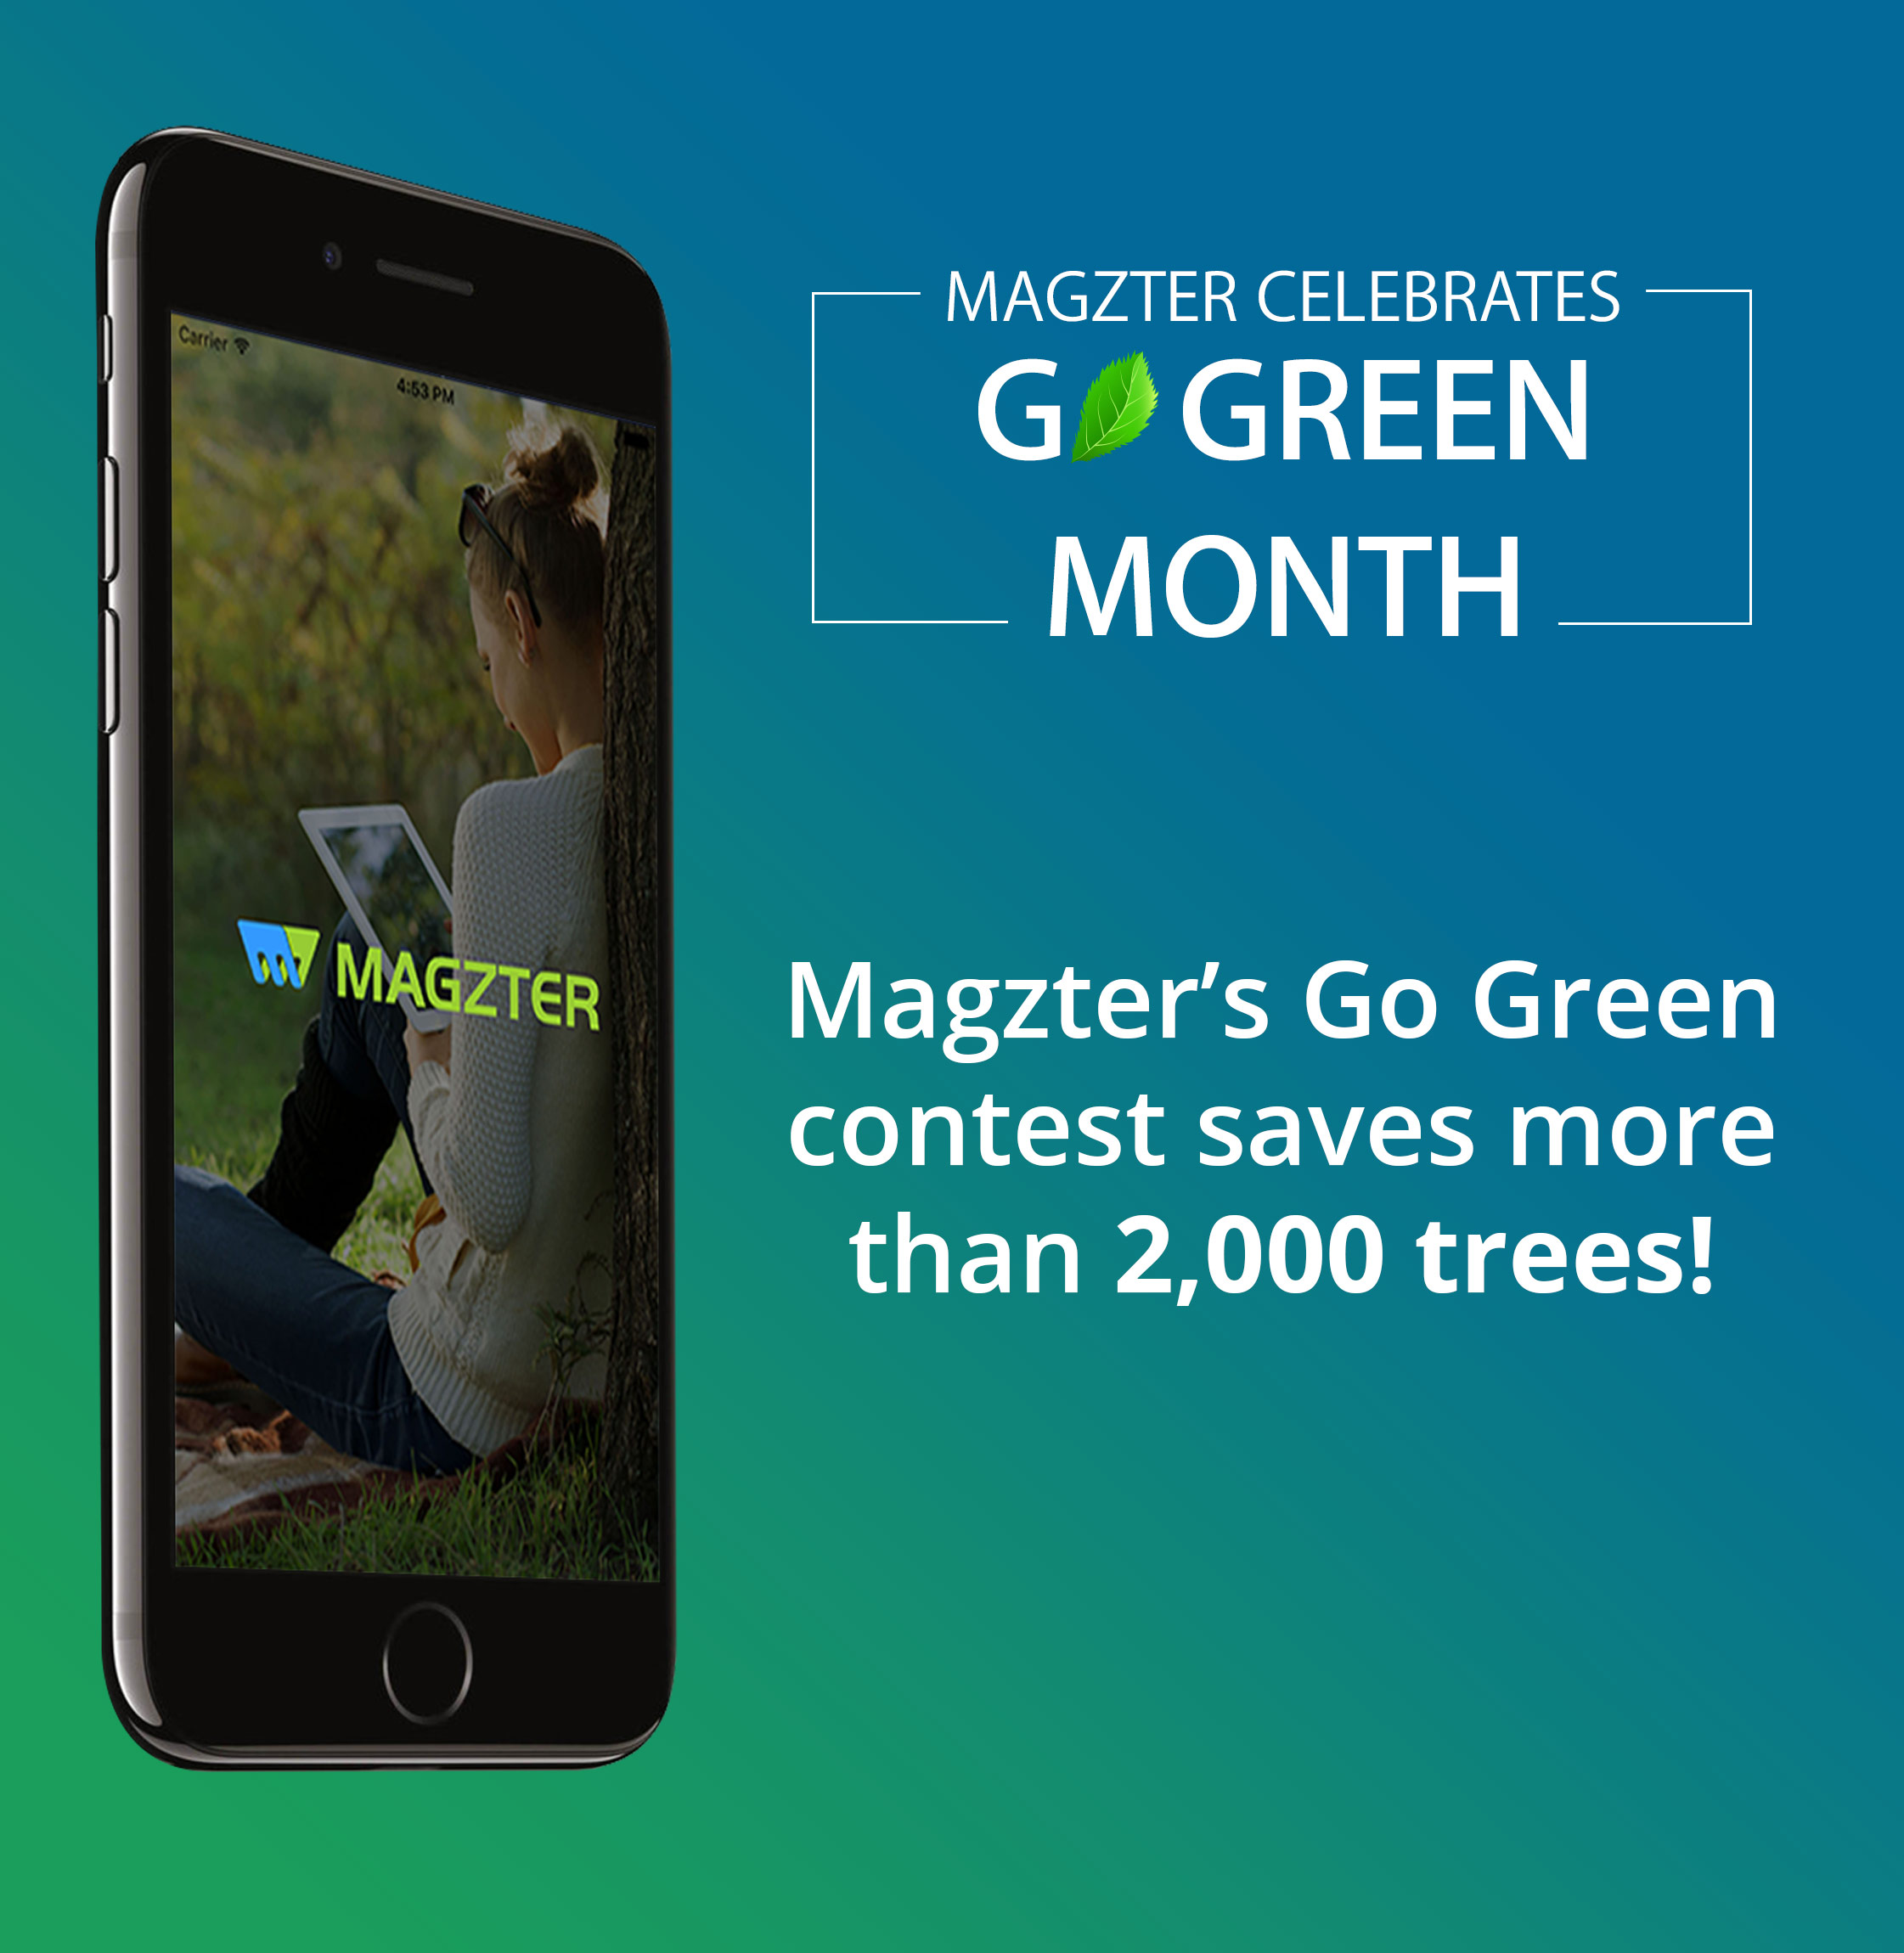 Magzter's Go Green Contest saves more than 2,000 Trees Image